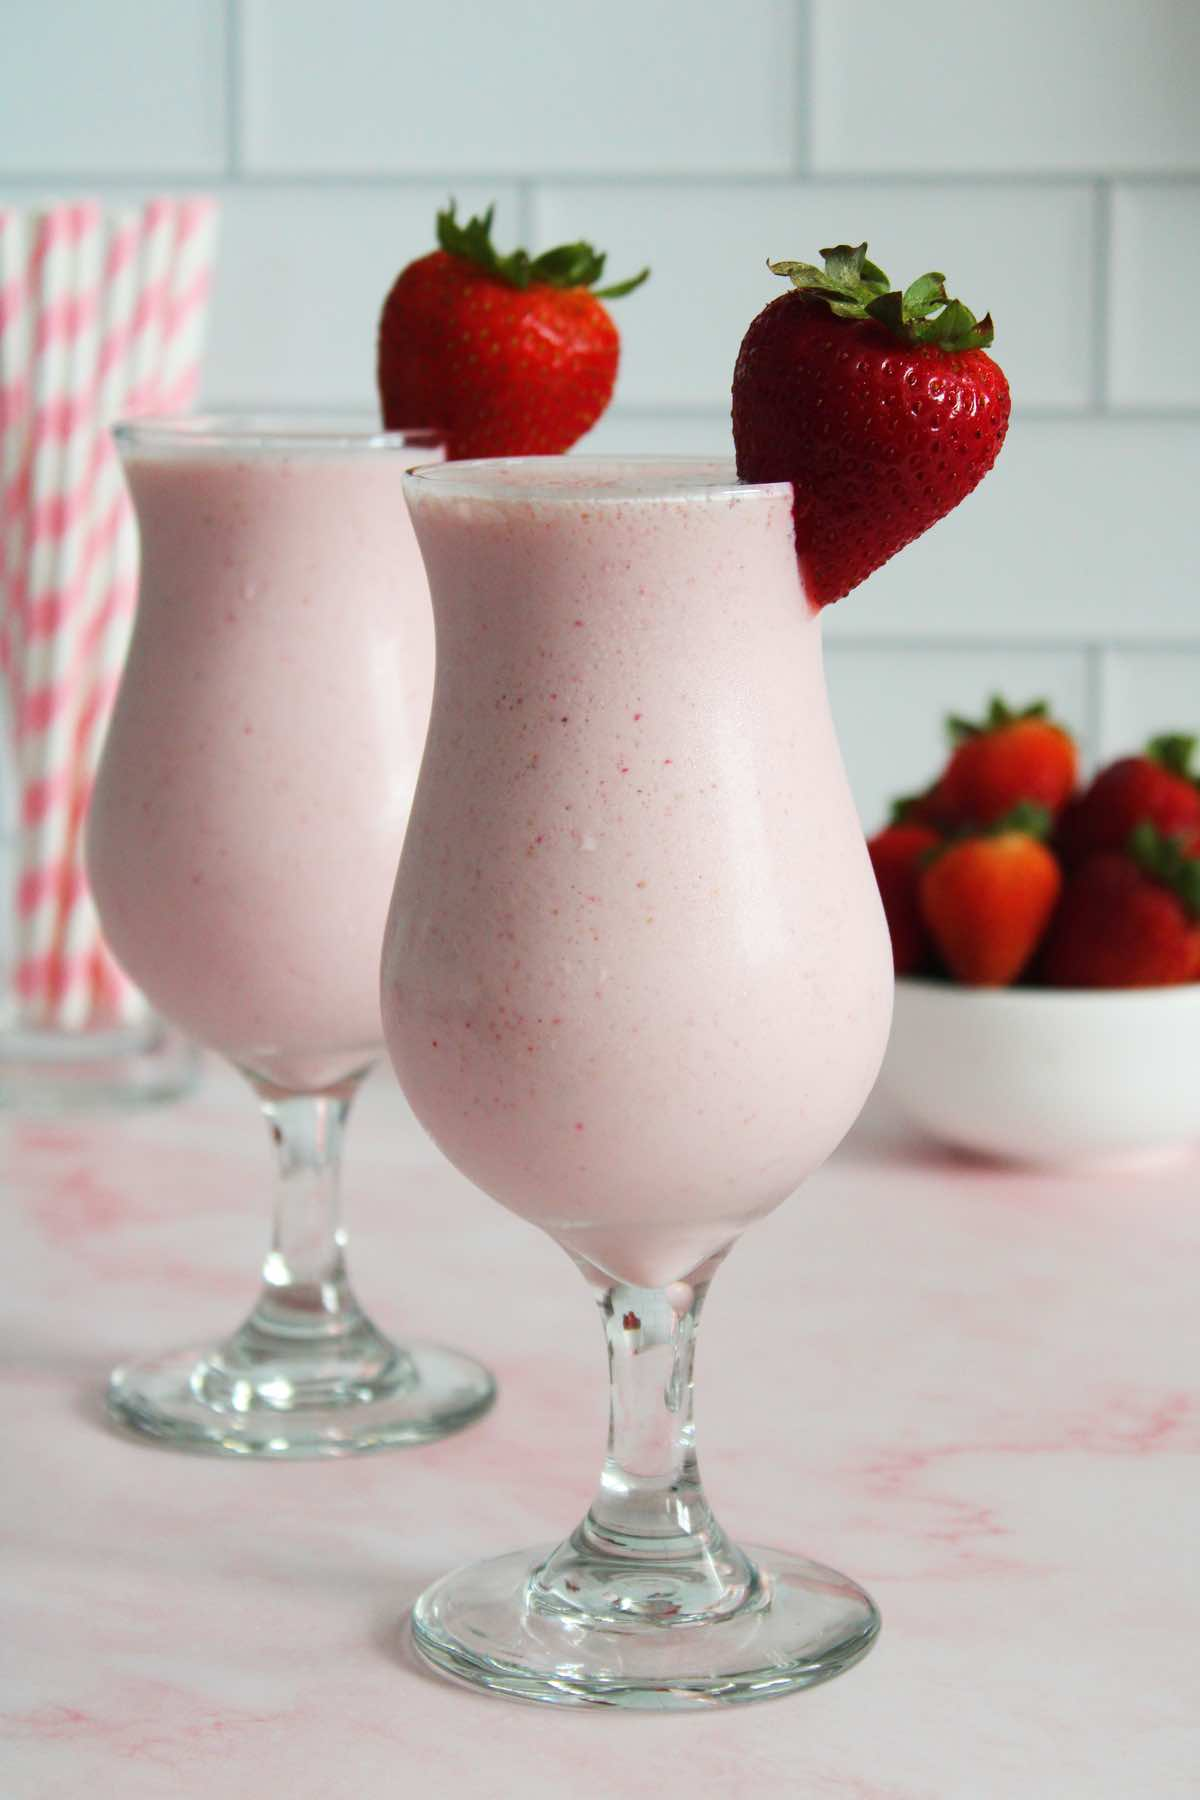 Make this easy shake with frozen strawberries, ice cream and milk.